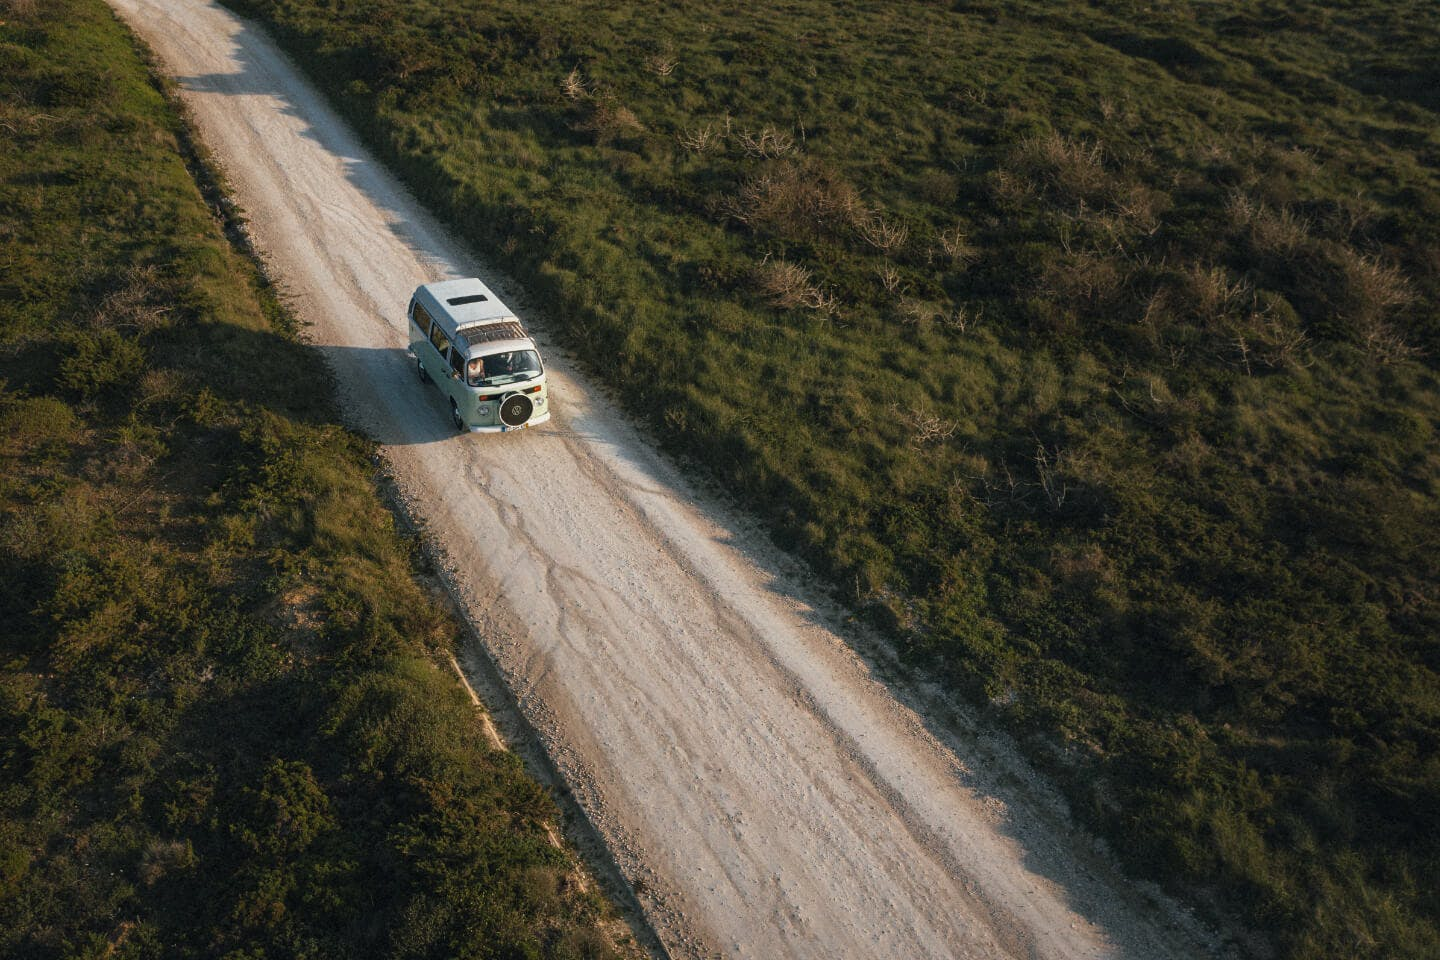 Vintage campervan driving along a dirt road from aerial perspective.